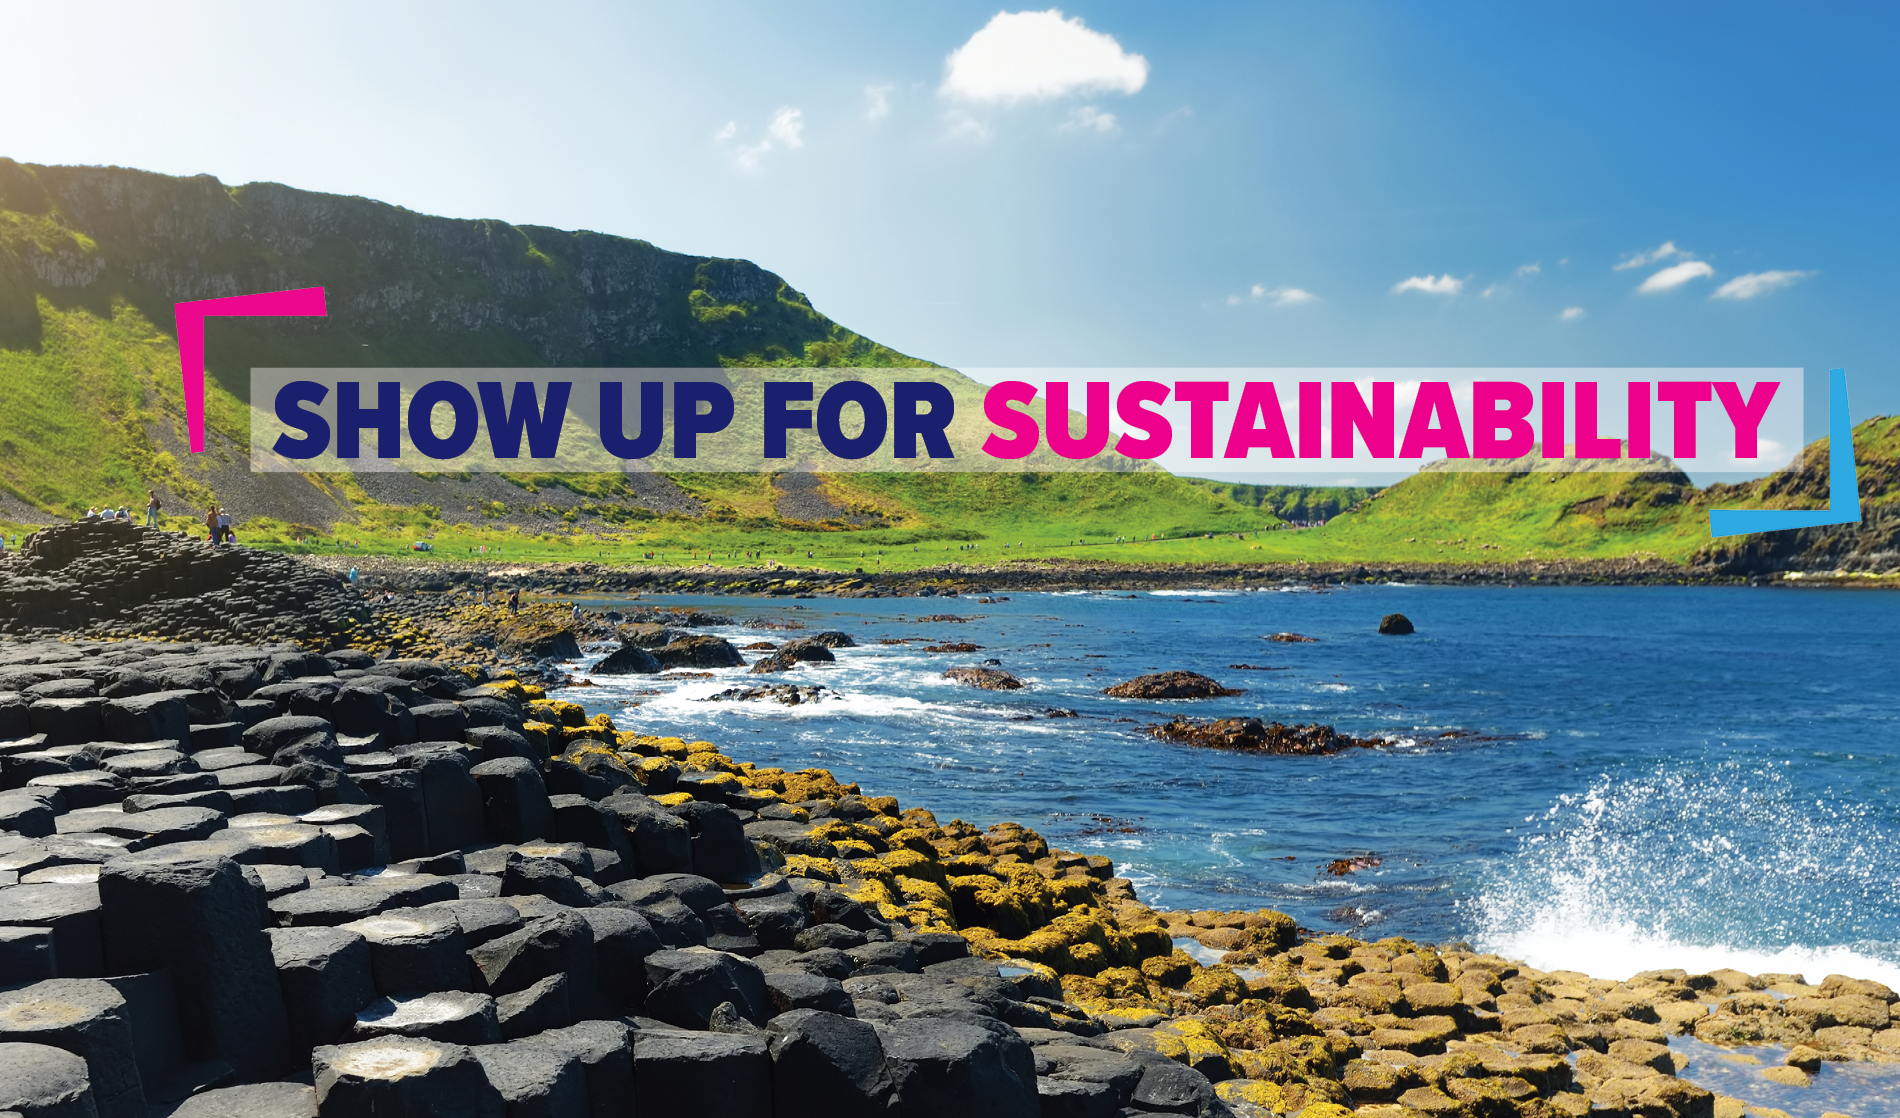 210128_Show up for sustainability